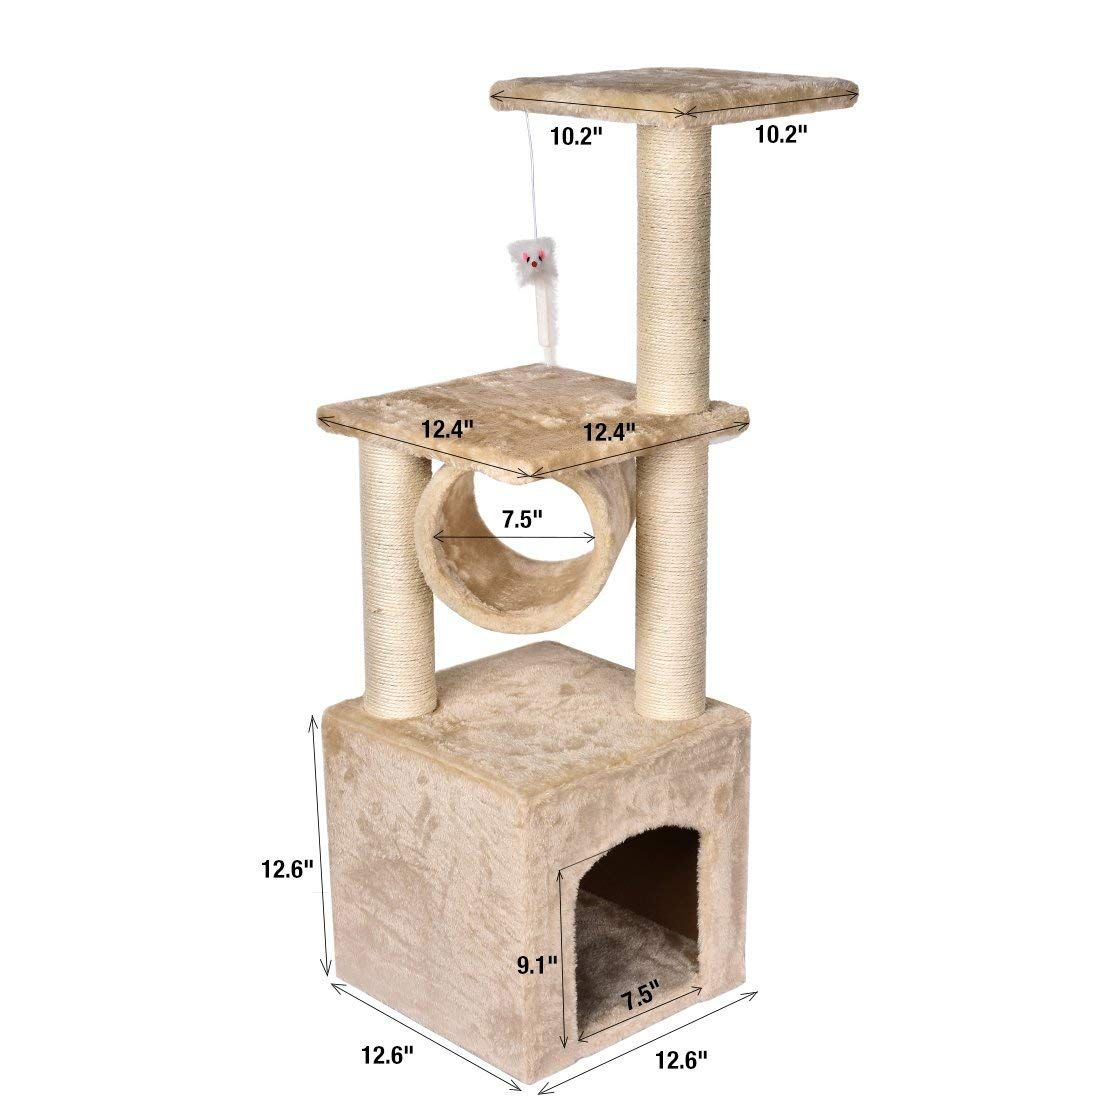 Luluxi 36 Deluxe Cat Tree Level Condo Furniture Scratcher Scratching Post Kitten Pet Play Toy House Upgrade Stability Cat Tree Scratching Post Toy House